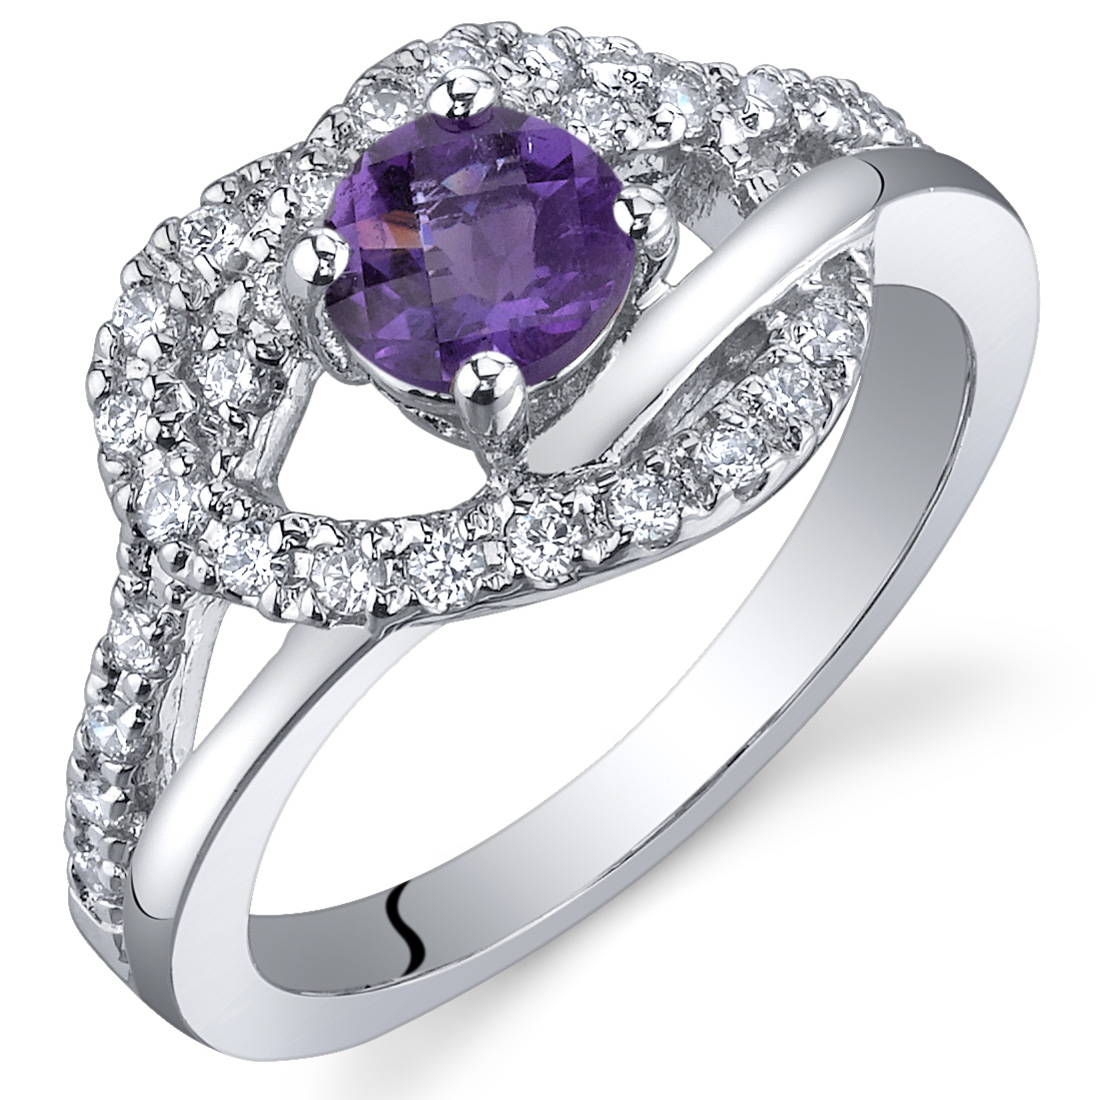 peora Rhythmic Harmony 0.50 Carats Amethyst Ring in Sterling Silver Available in Sizes 5 to 9 at Sears.com